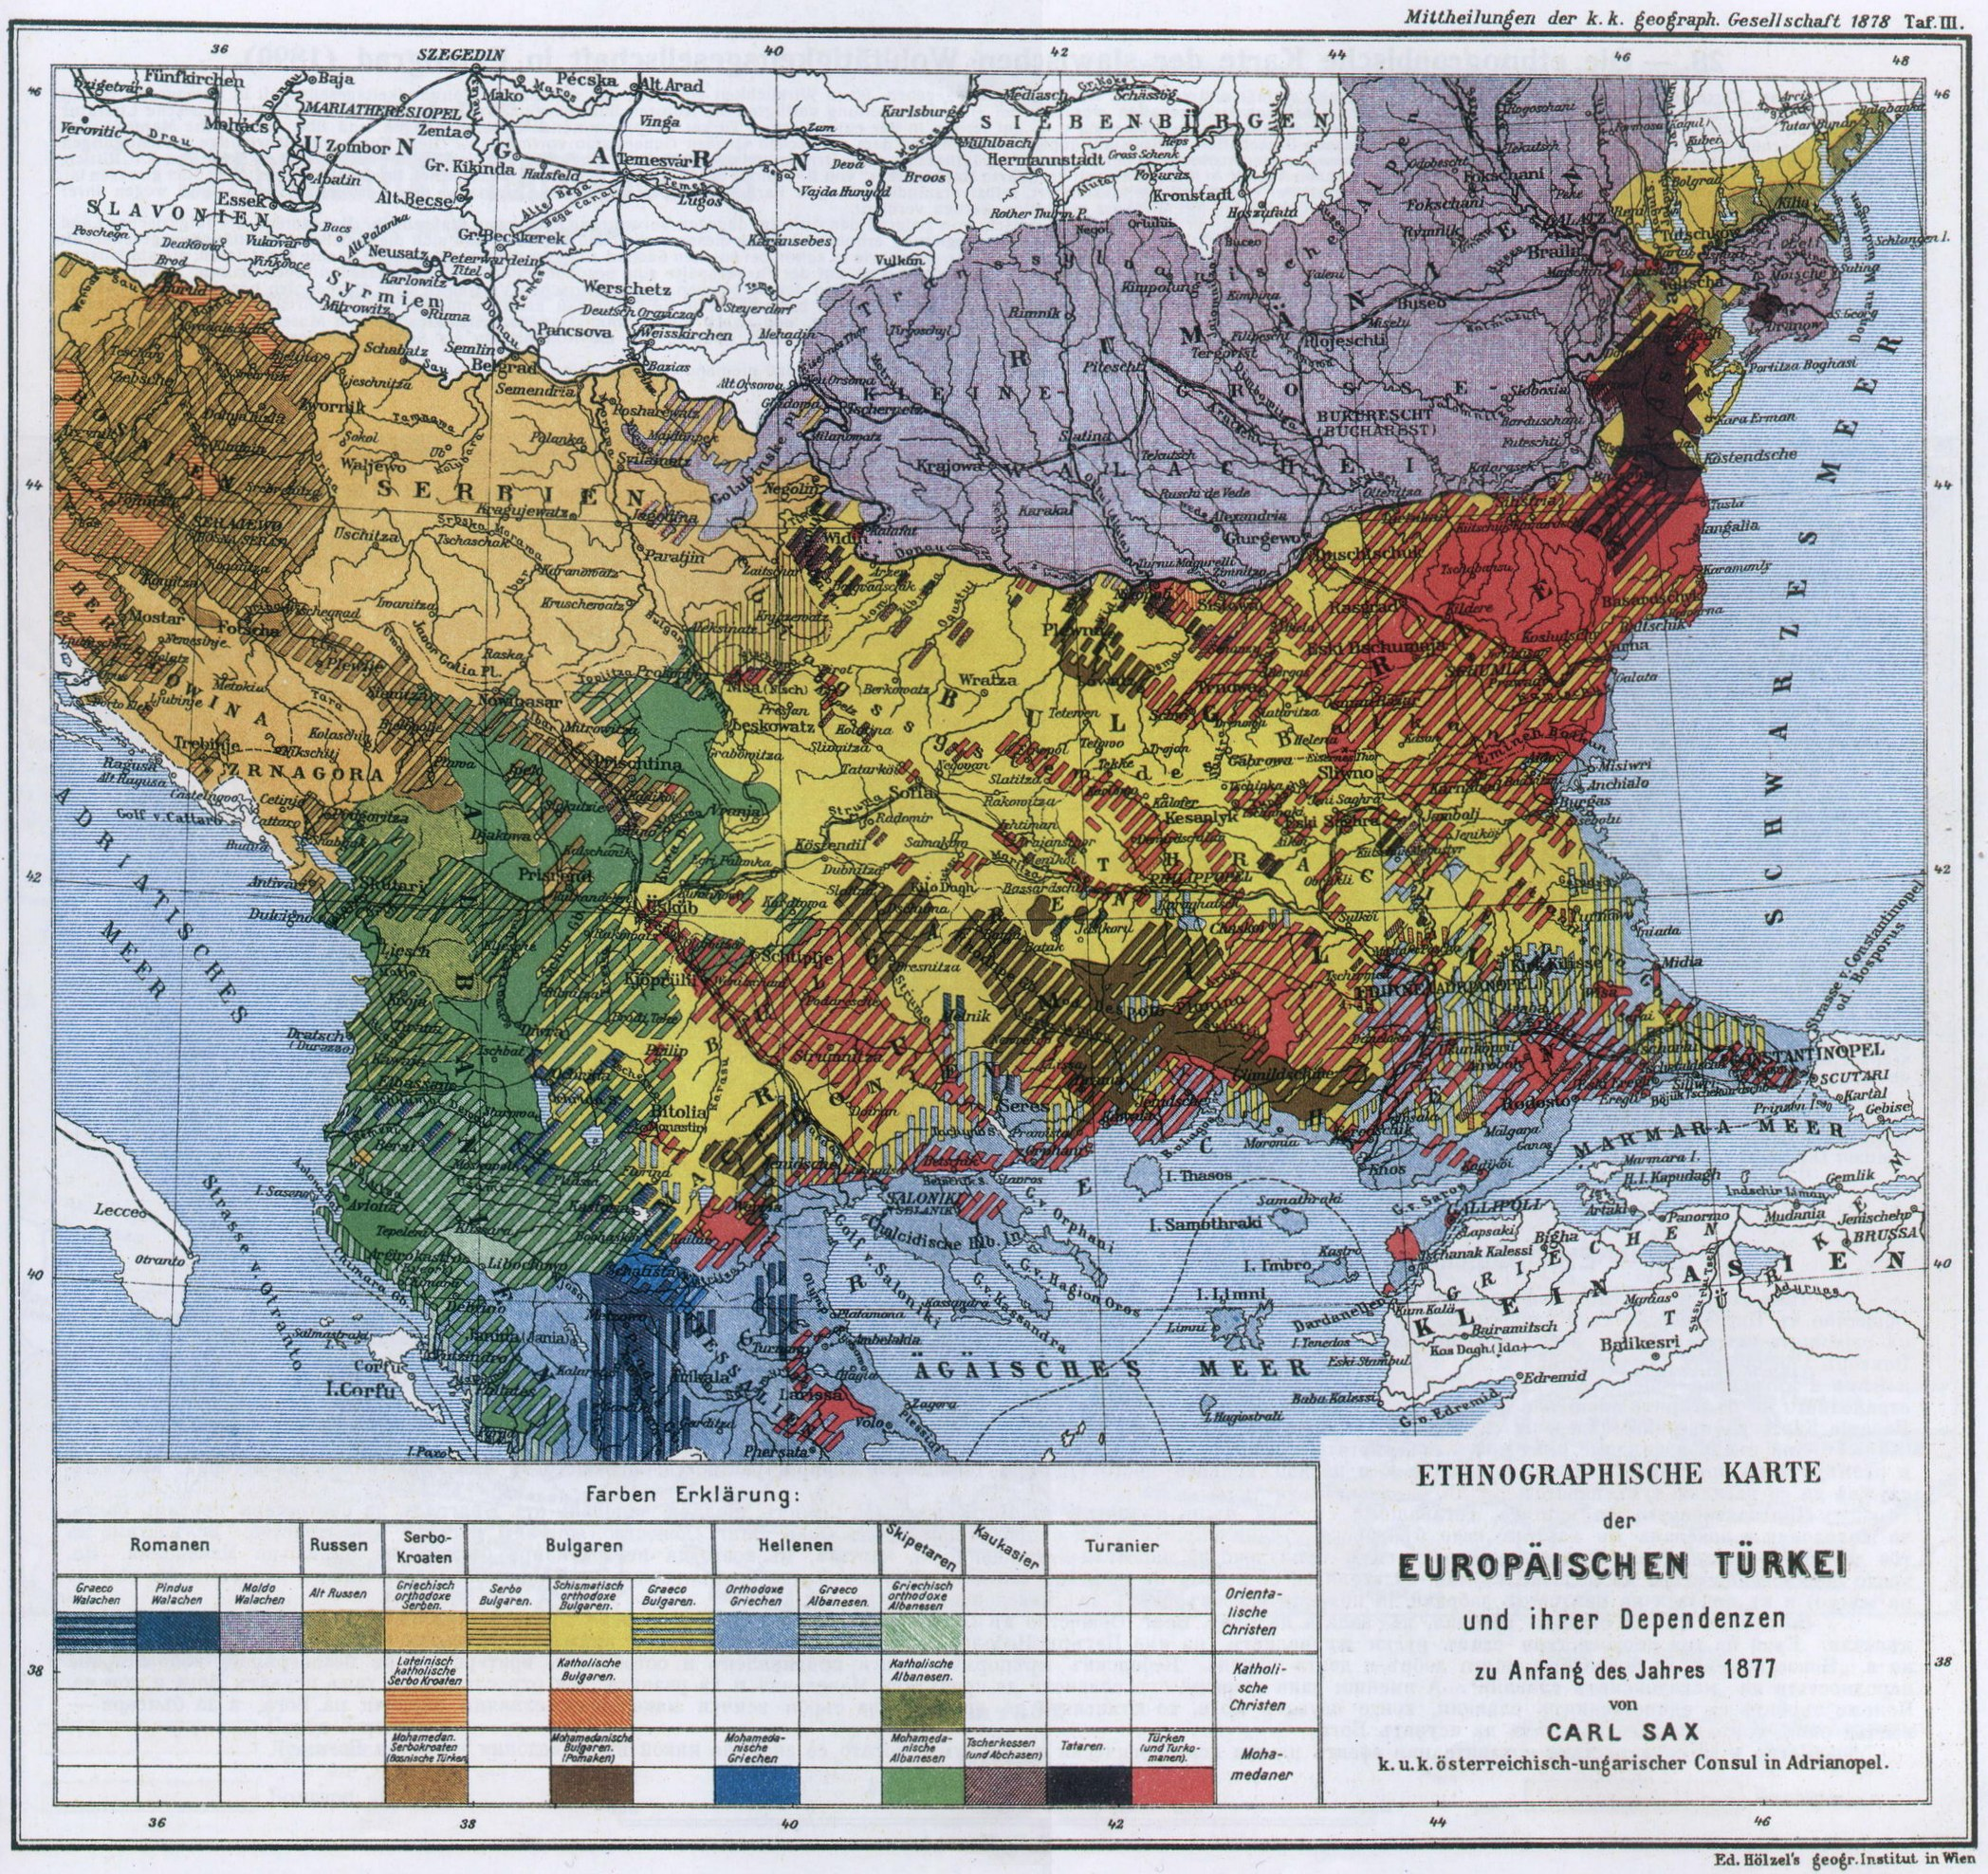 Map Of Europe And Turkey.File Ethnographic Map Of European Turkey From 1877 By Carl Sax Jpg